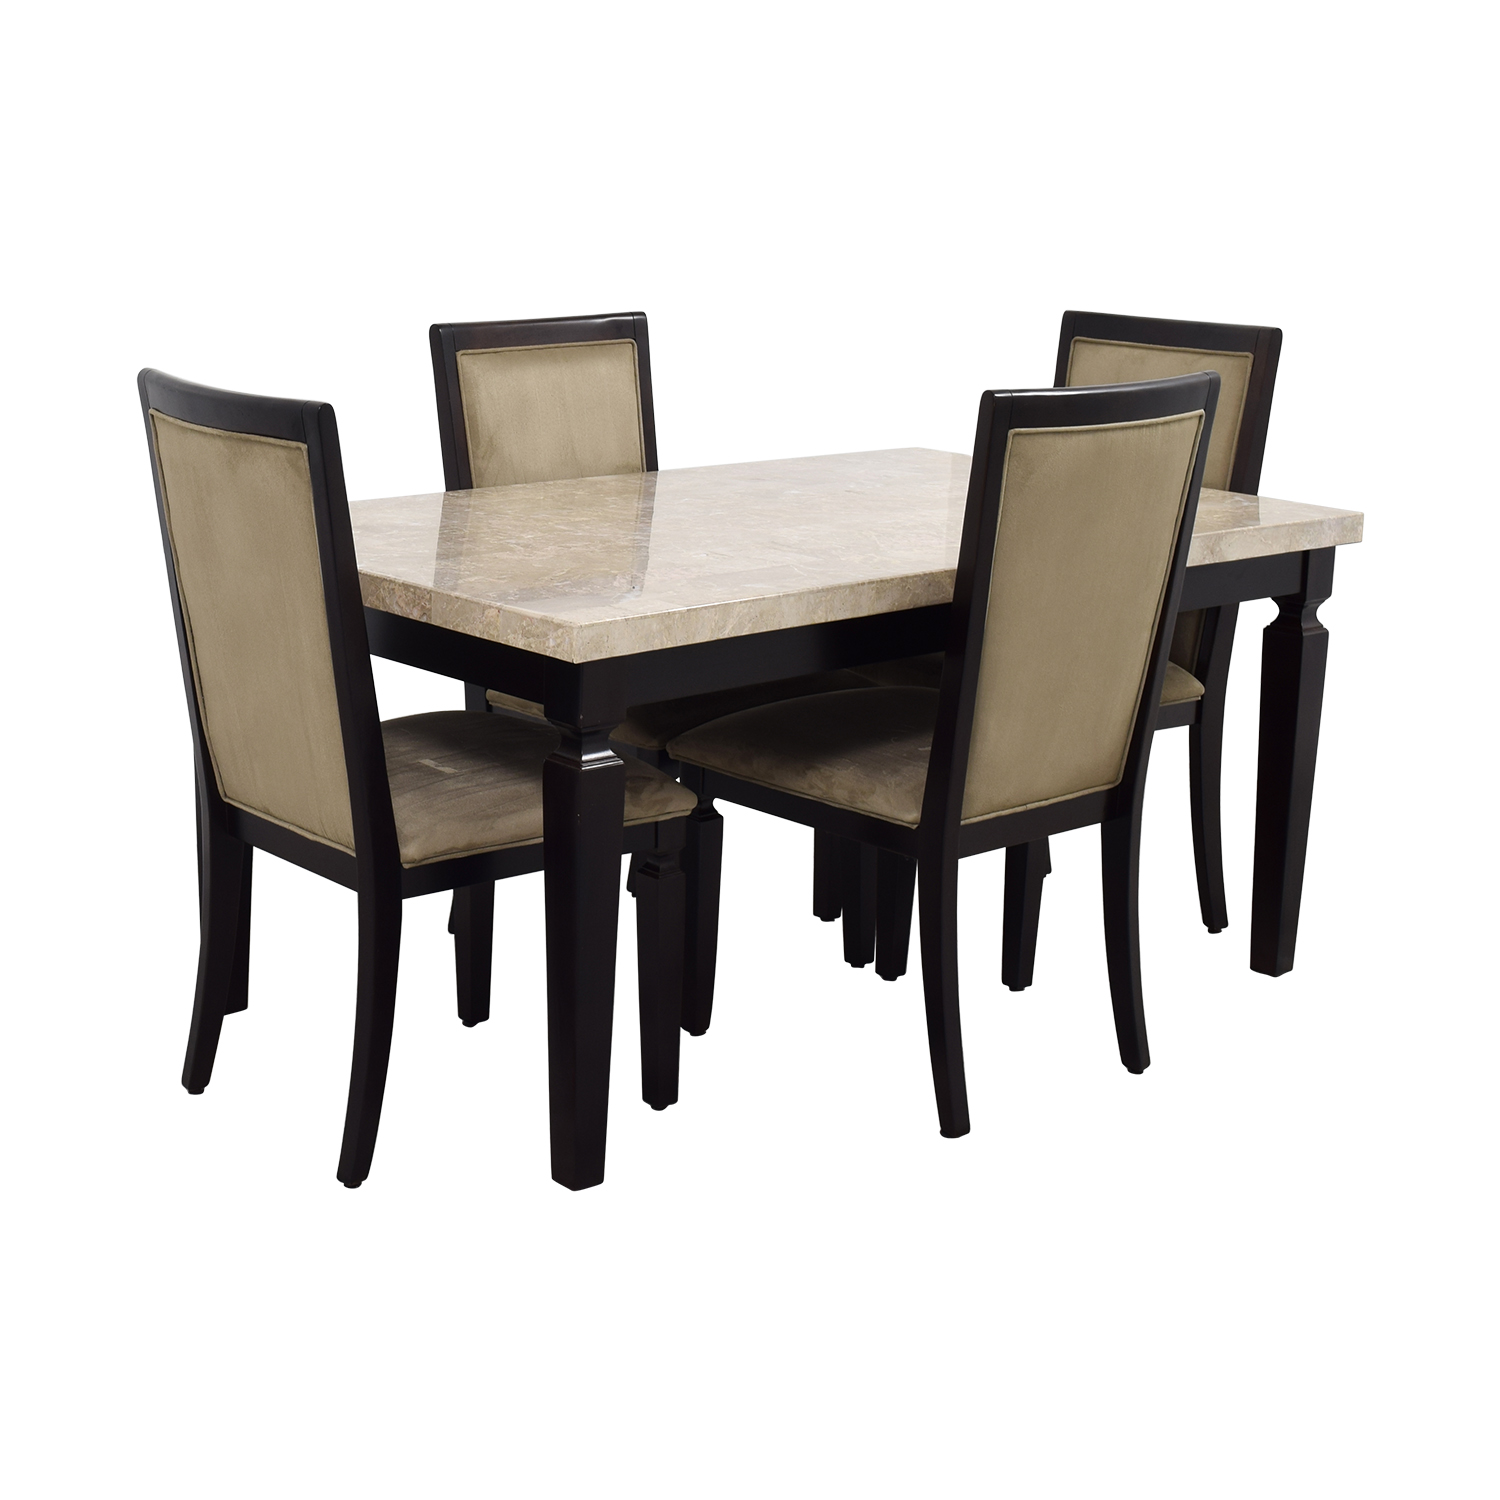 Raymour & Flanigan Raymour & Flanigan Rogue Marble Dining Set for sale